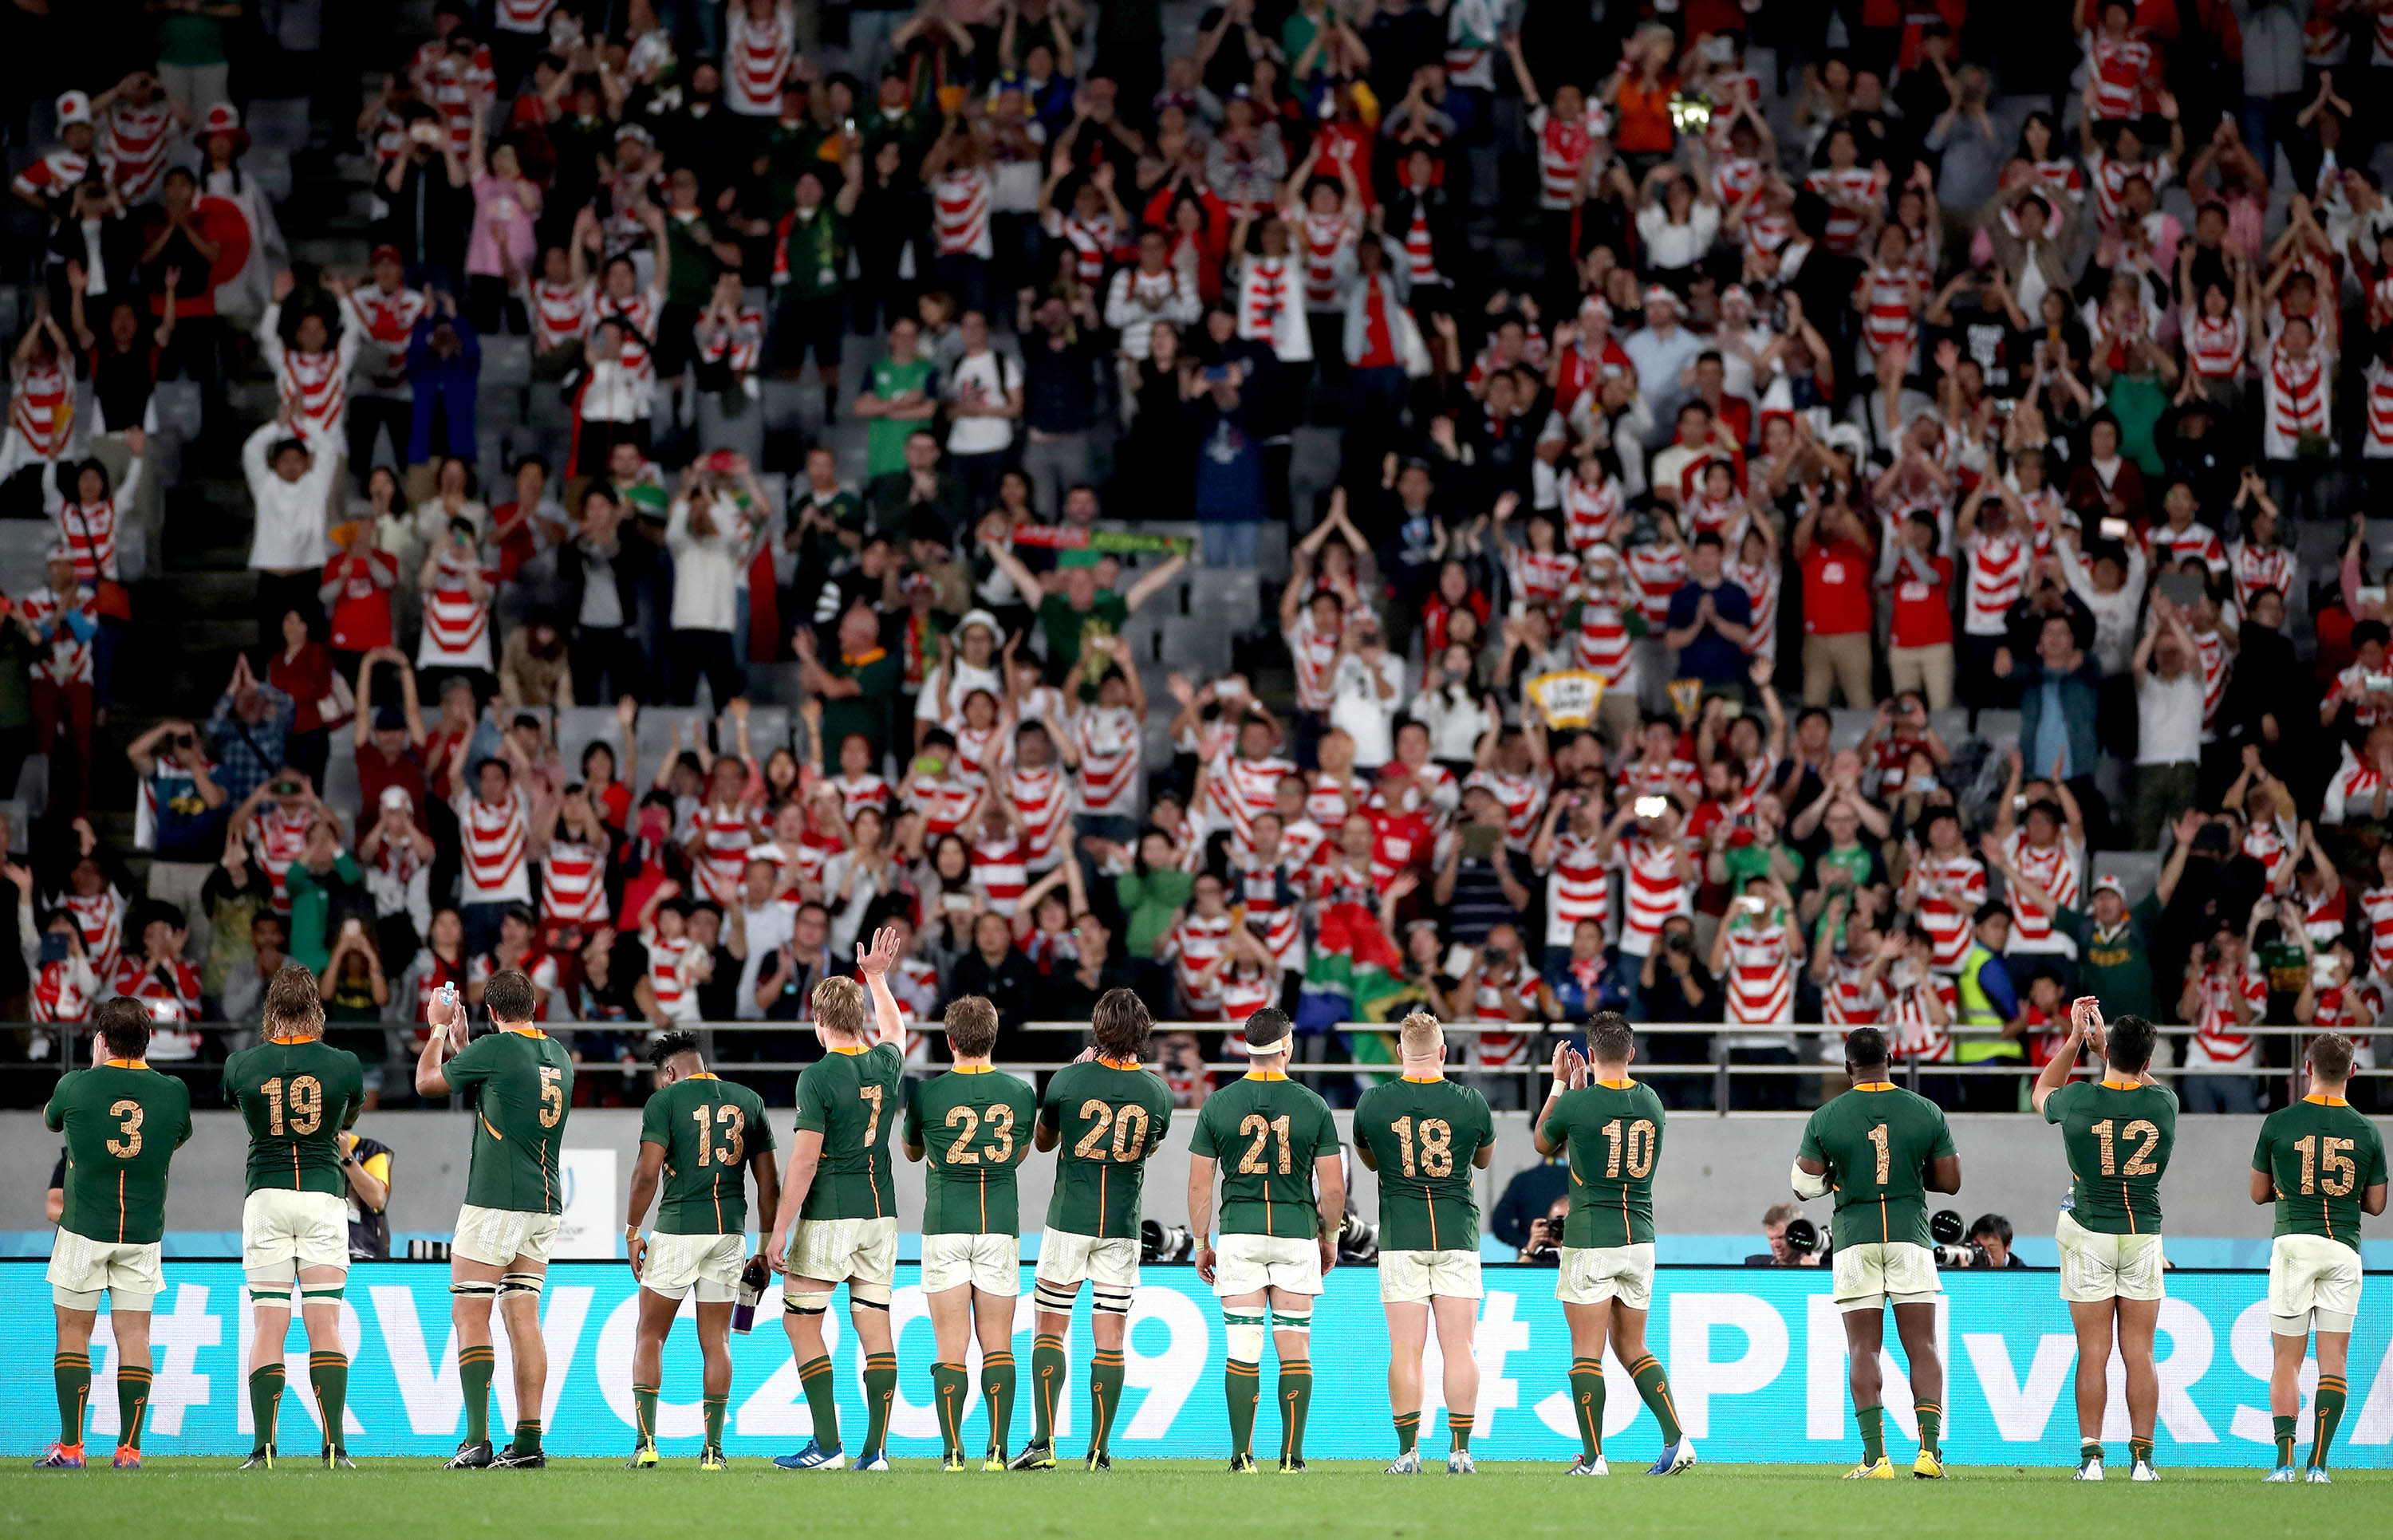 20 October 2019: South African players acknowledging the fans after the Springboks' victory against Japan in the 2019 Rugby World Cup quarterfinal at the Tokyo Stadium in Tokyo, Japan. (Photograph by Cameron Spencer/Getty Images)